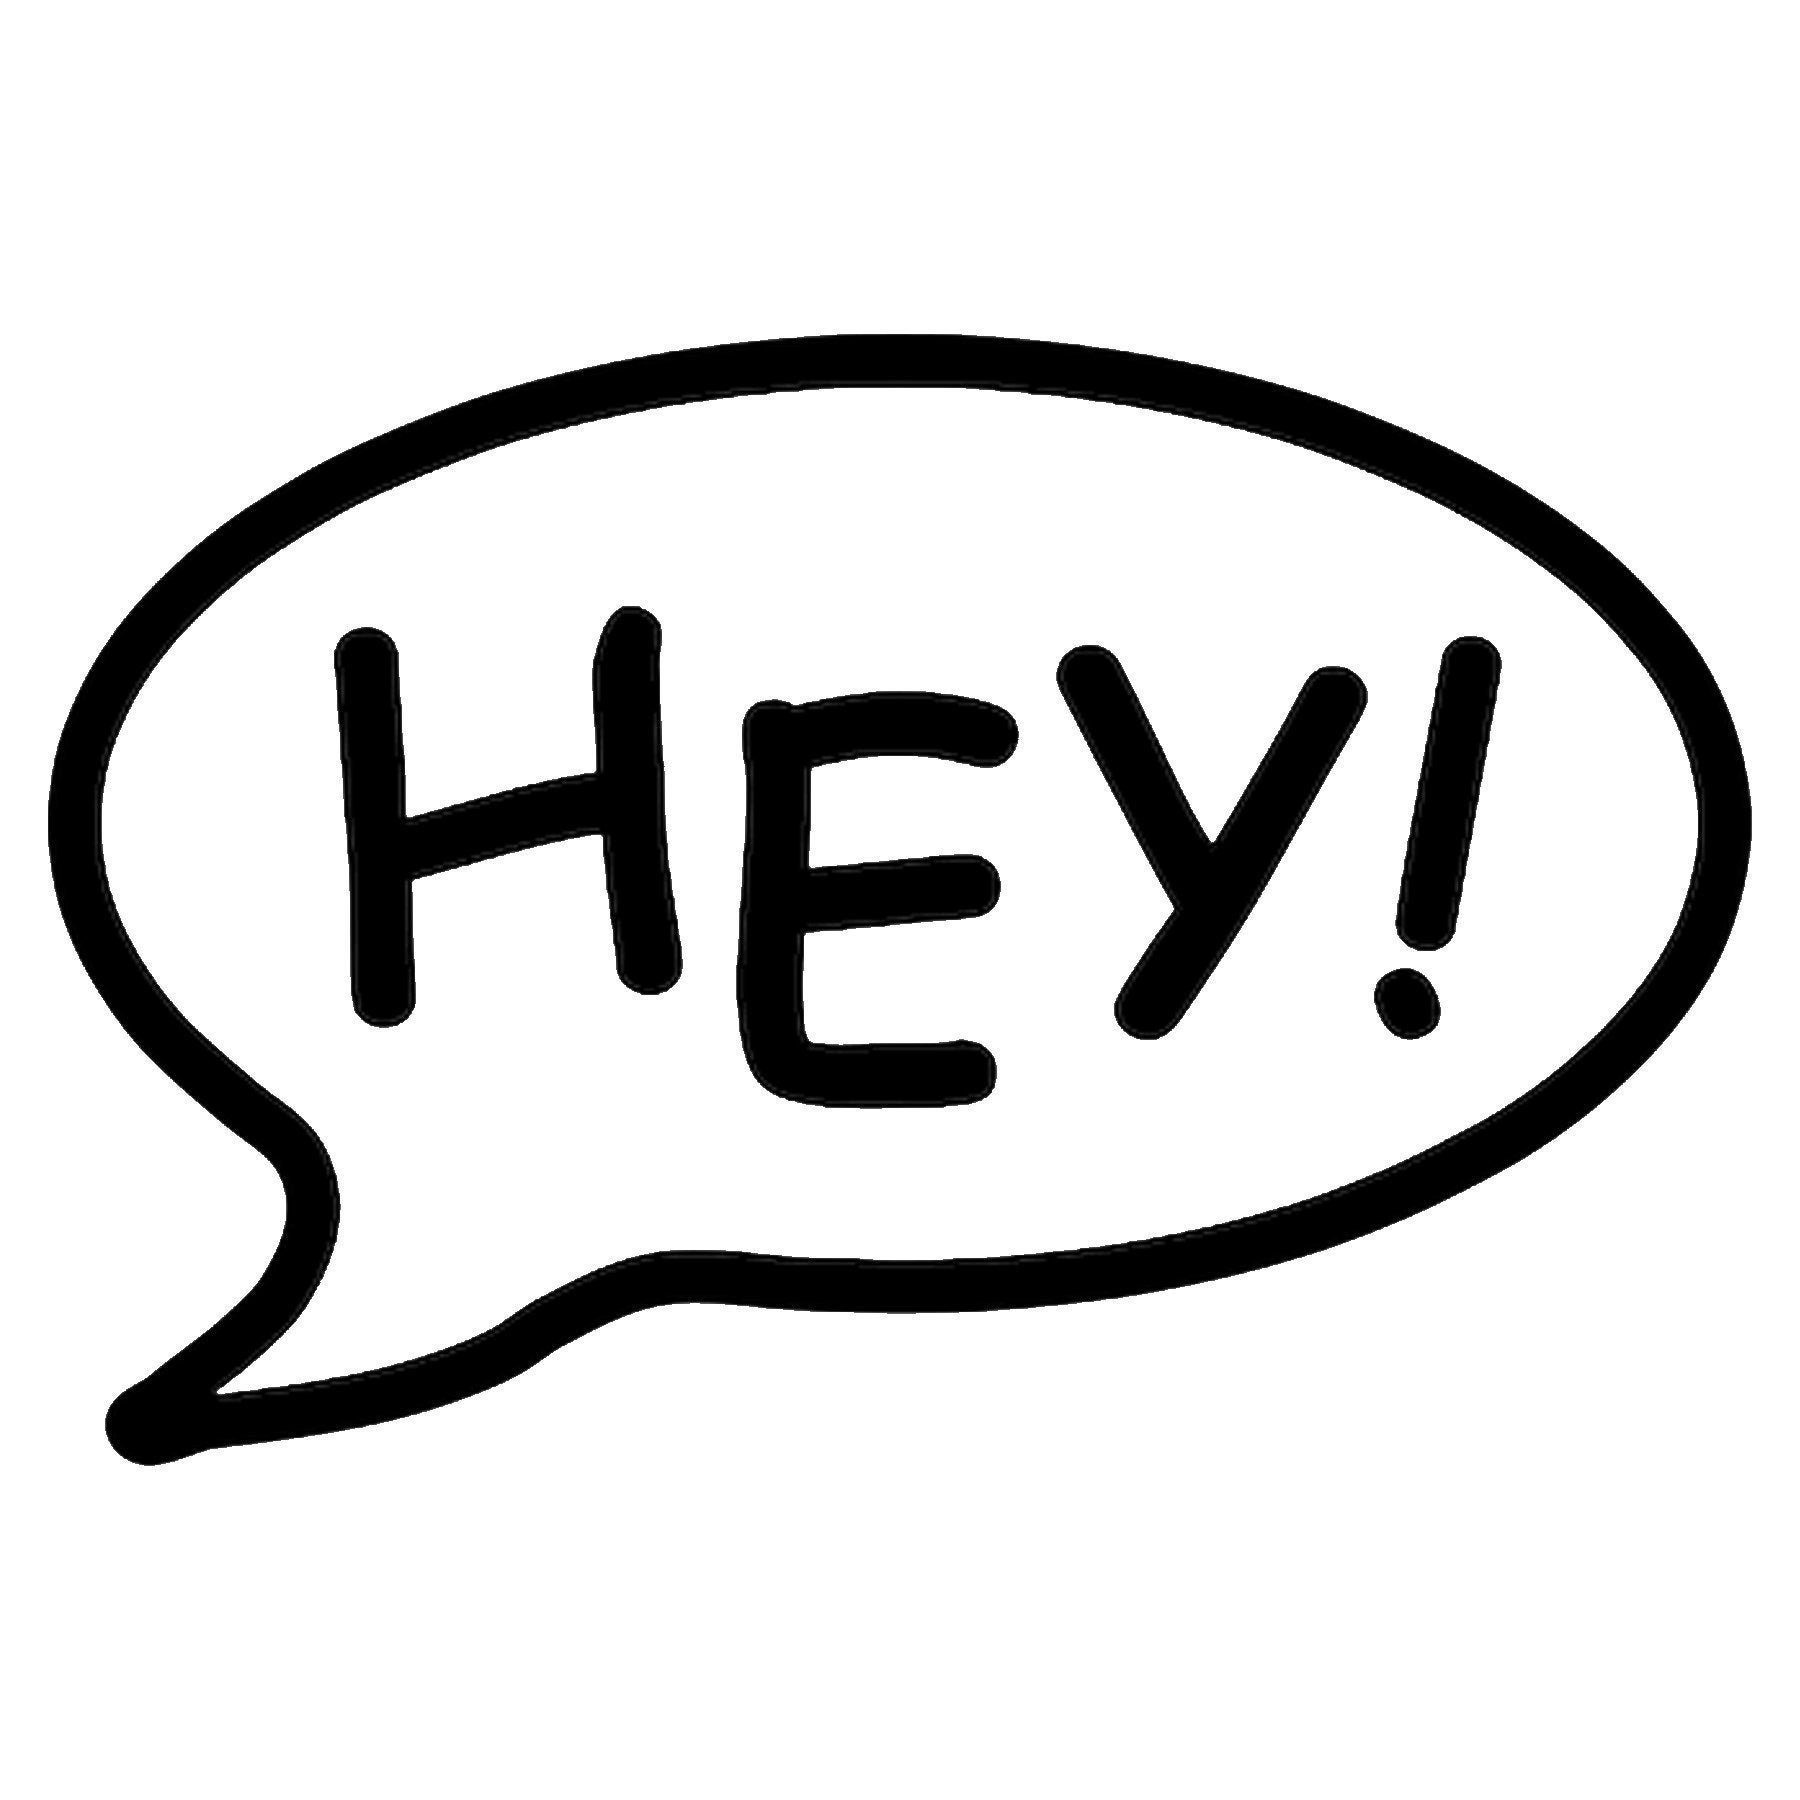 CAD$8.69 - Hey Call out Vinyl Decal - various sizes and colors - colours